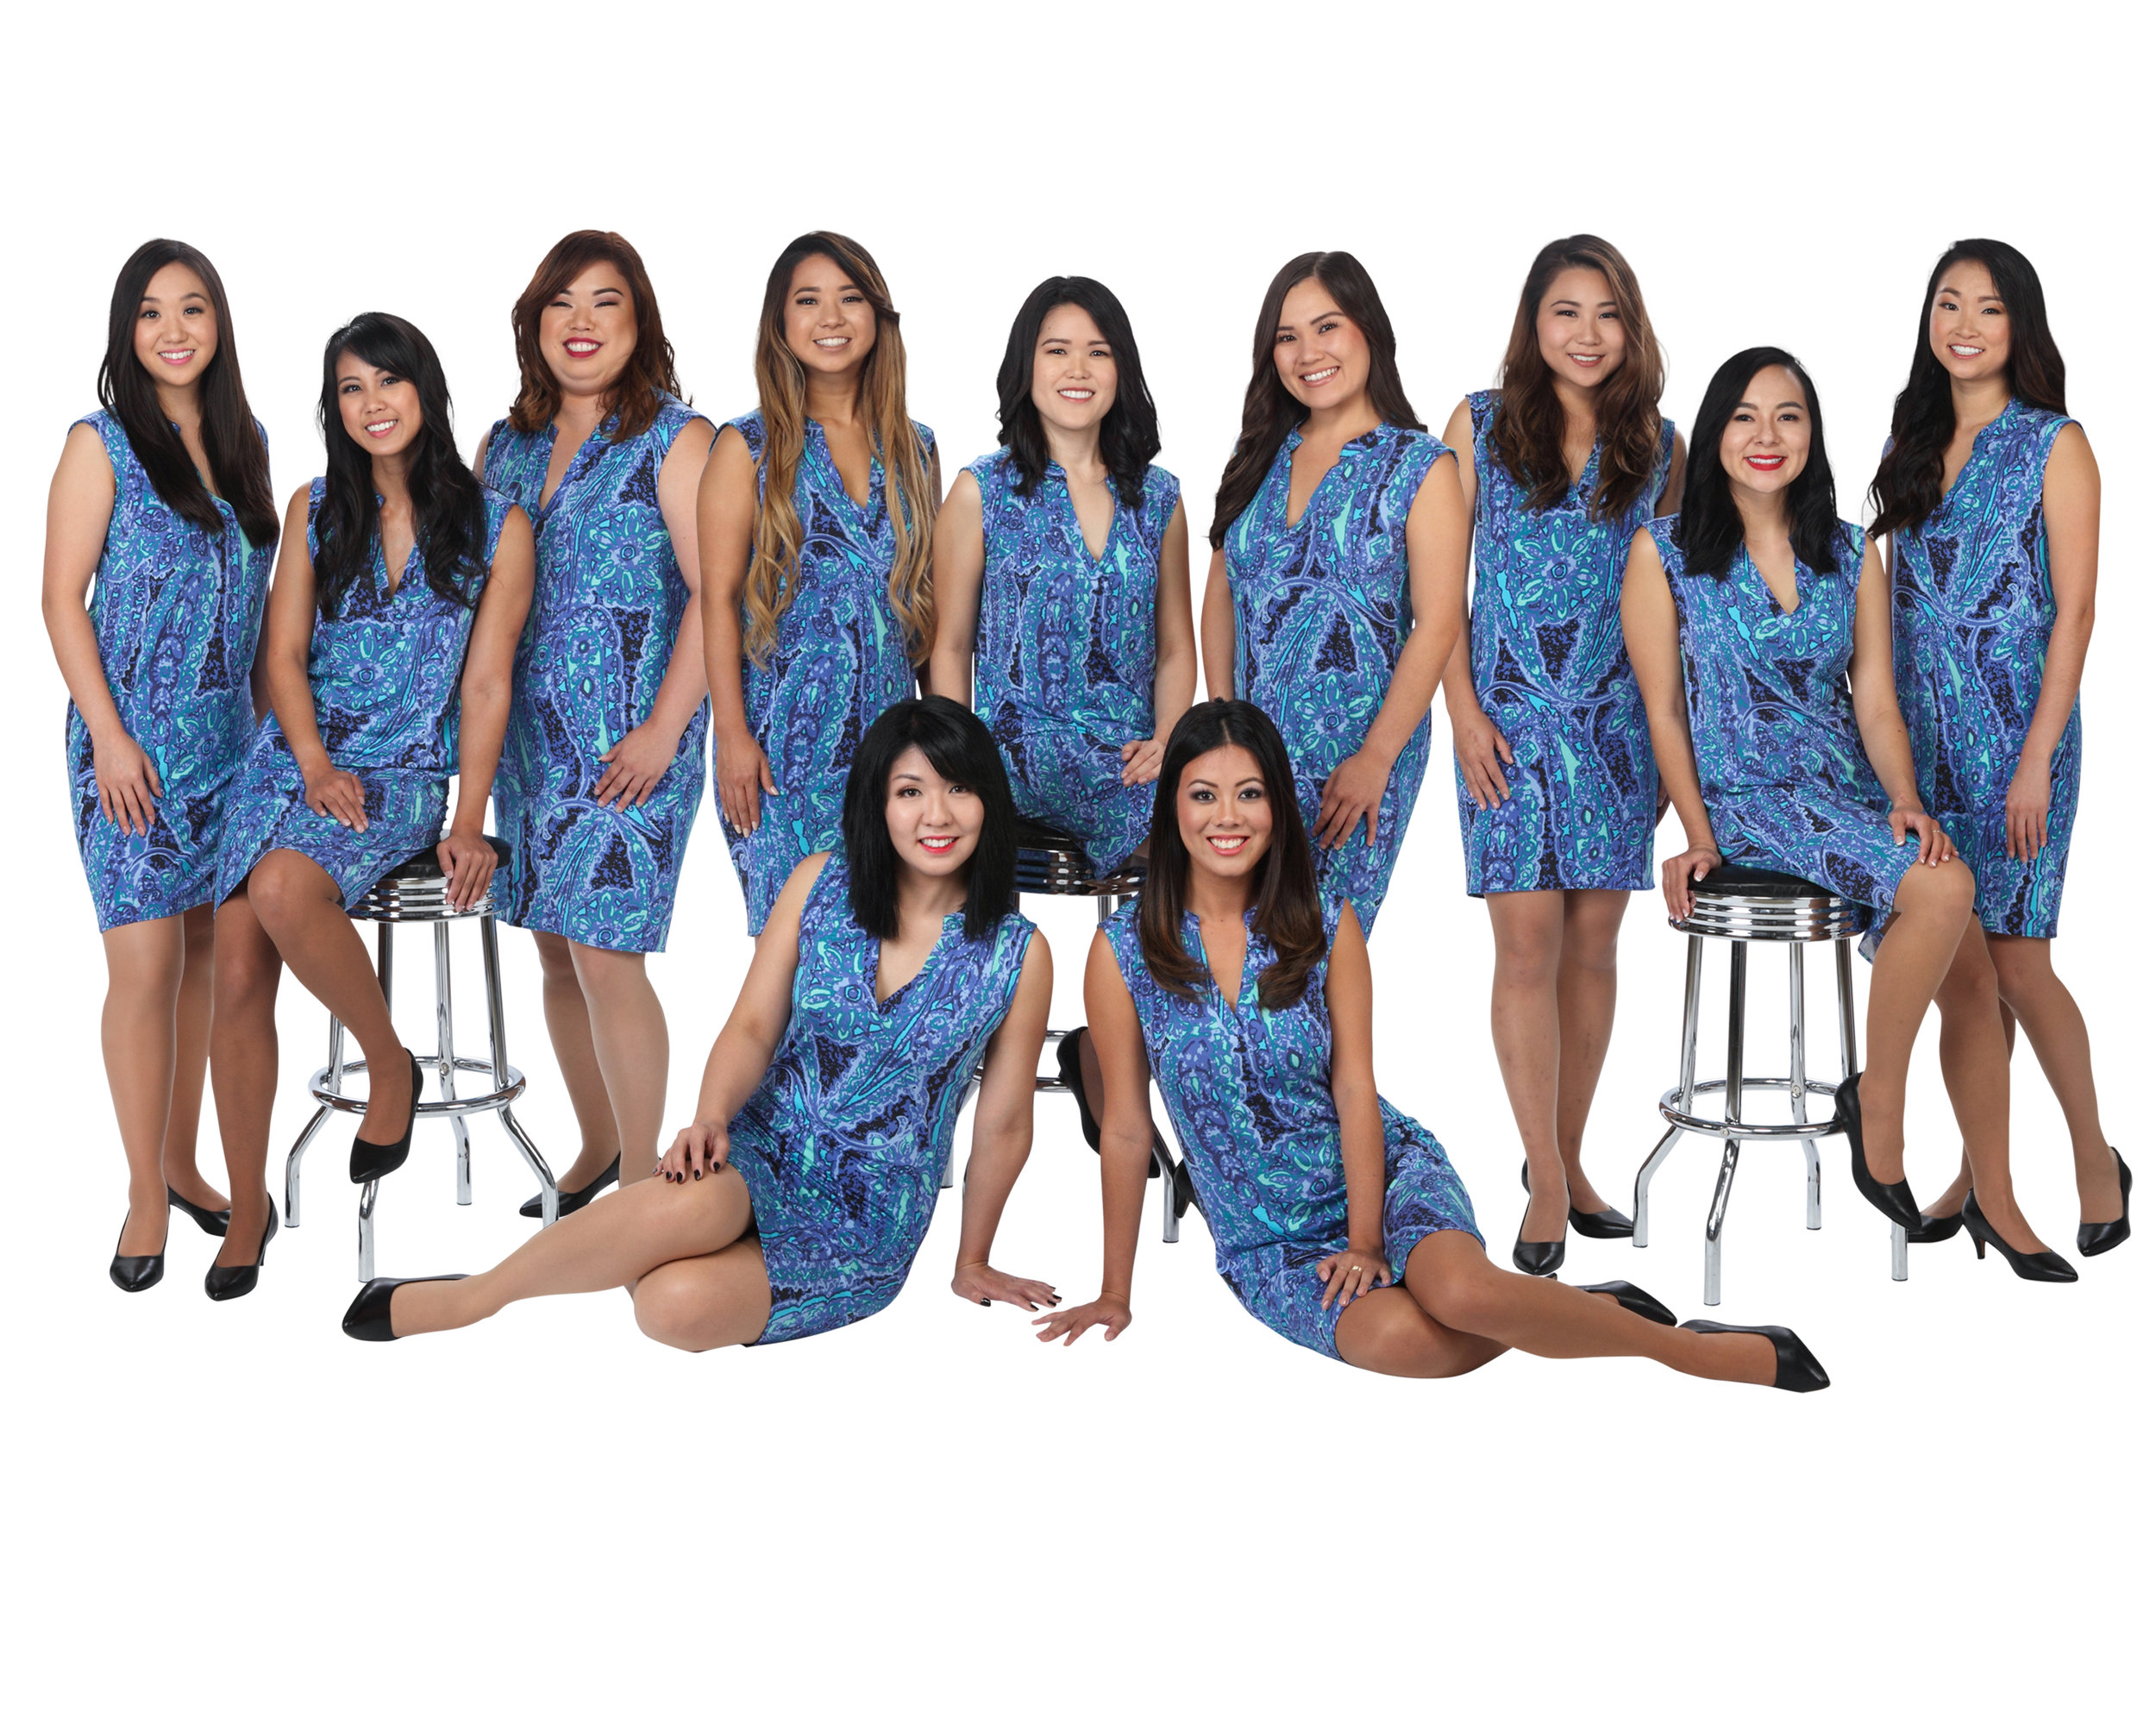 Back from Left to Right: Ariel Lee, Jacqueline Arelliano, Jaimee Sambrano, Reeann Minatoya, Lauren Sugai, Kalei Kagawa, Michelle Chen, Kallista Hiraoka, Kayla Ueshiro  Front from Left to Right: Katrina Shimomura, Taylor Chee  The 67th Cherry Blossom Festival Contestants are featured wearing an original design by Gold Sponsor, Tori Richard.  Photo courtesy of Silver Sponsor, Steven Yamaki, photographer and owner of Images by Steven.